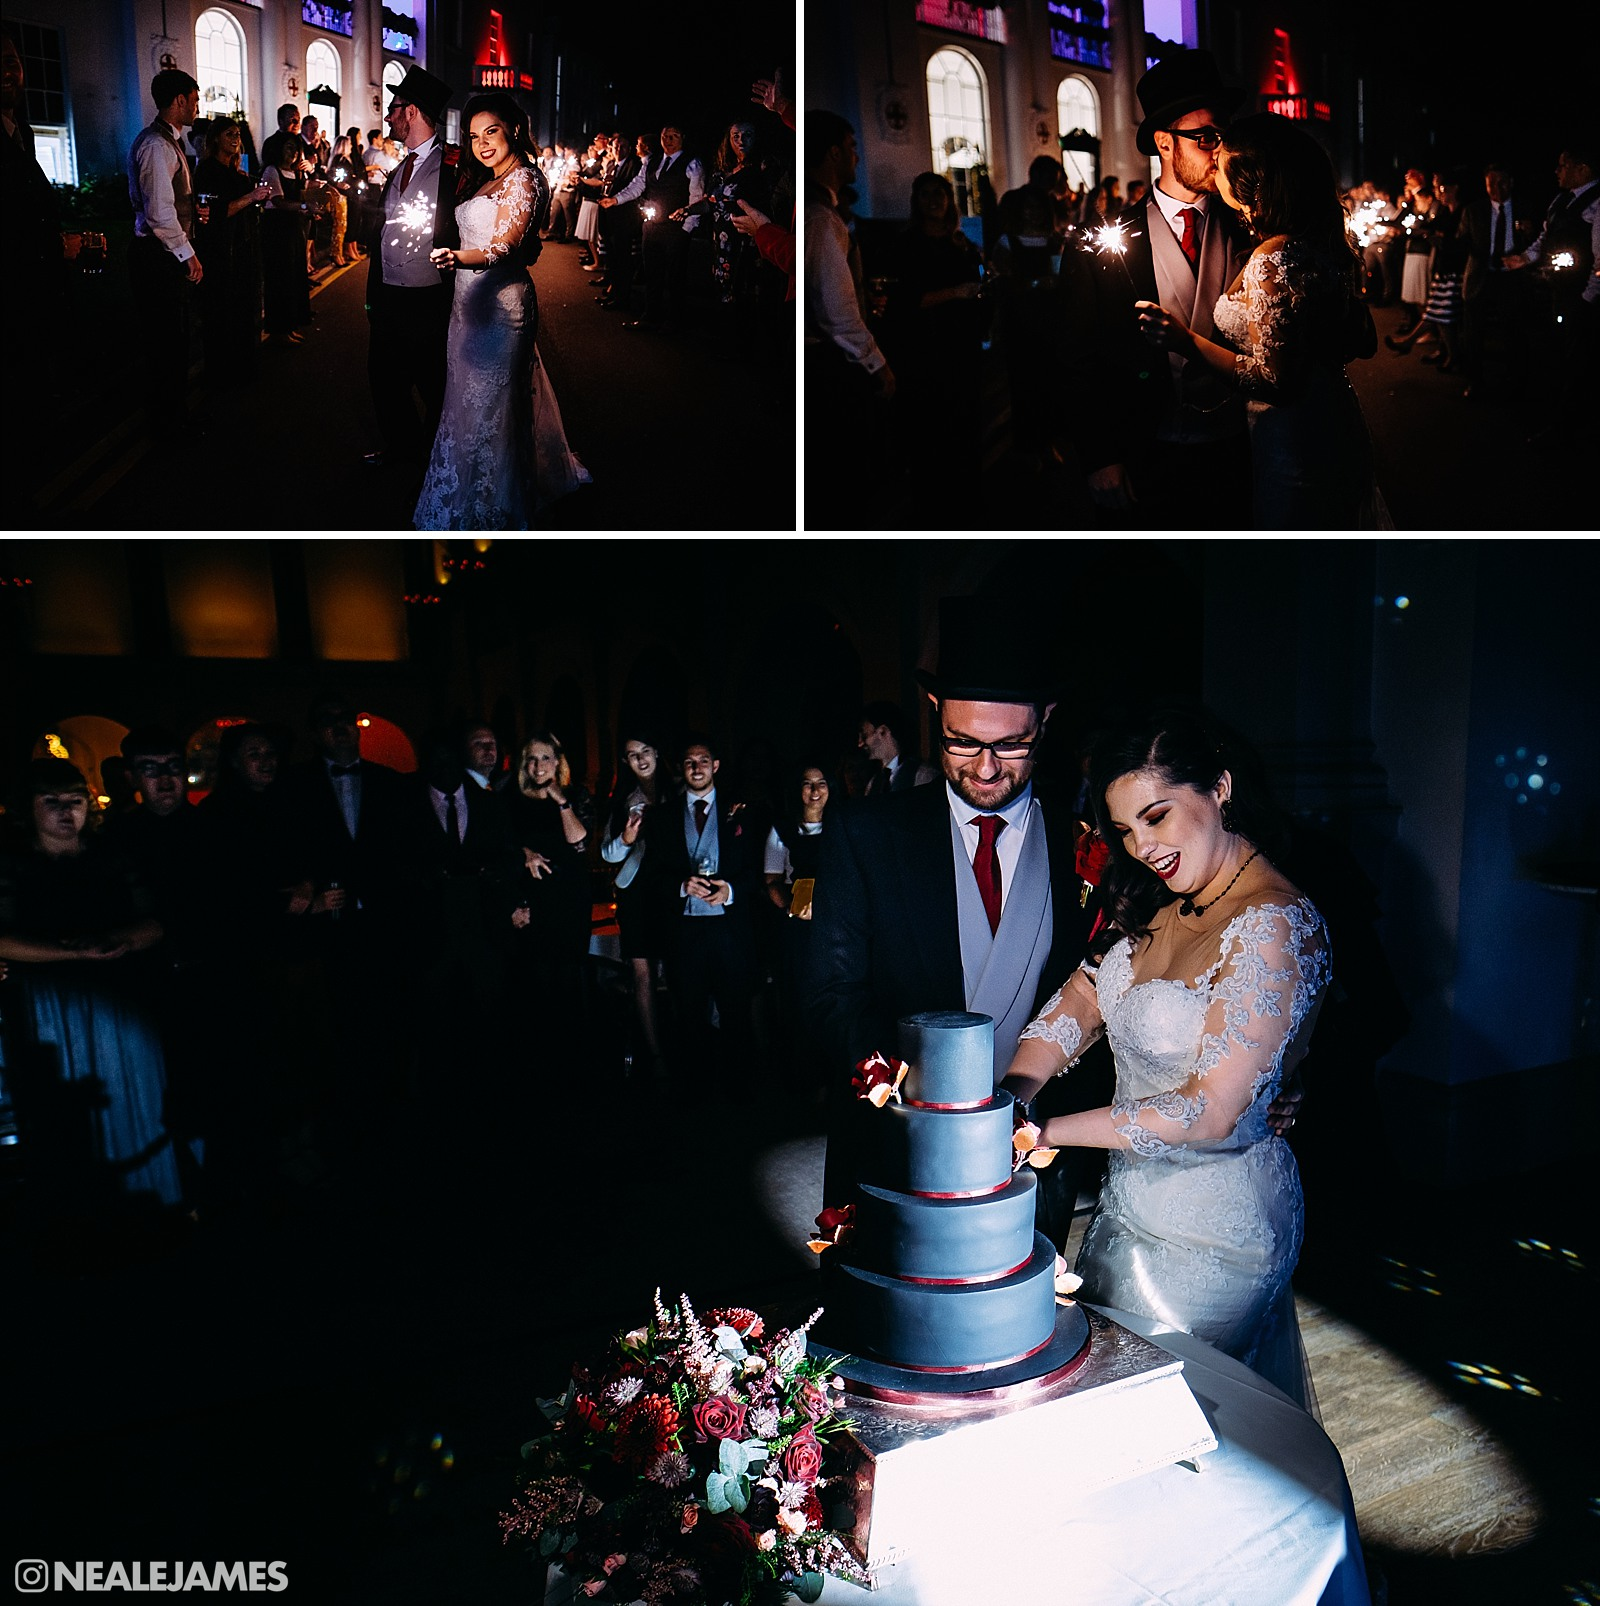 A colour pic of the bride and groom, Tom and Jasmine cutting their wedding cake